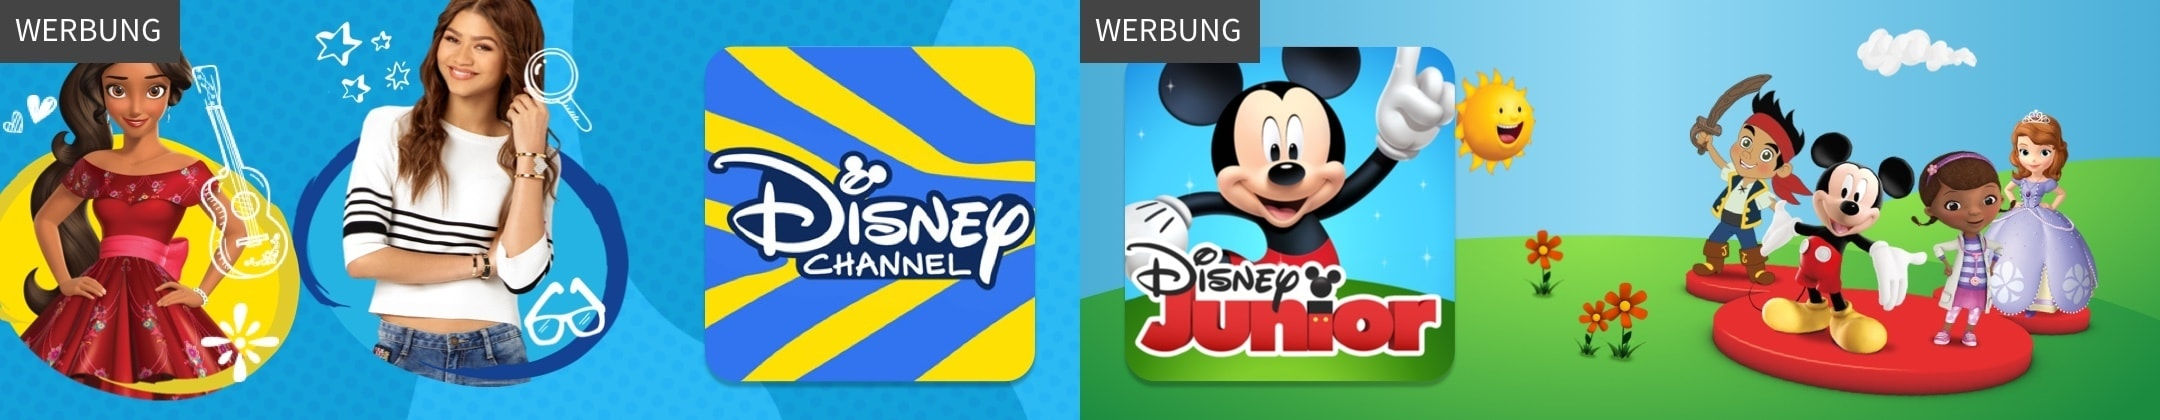 WERBUNG - Disney Channel App & Disney Junior App